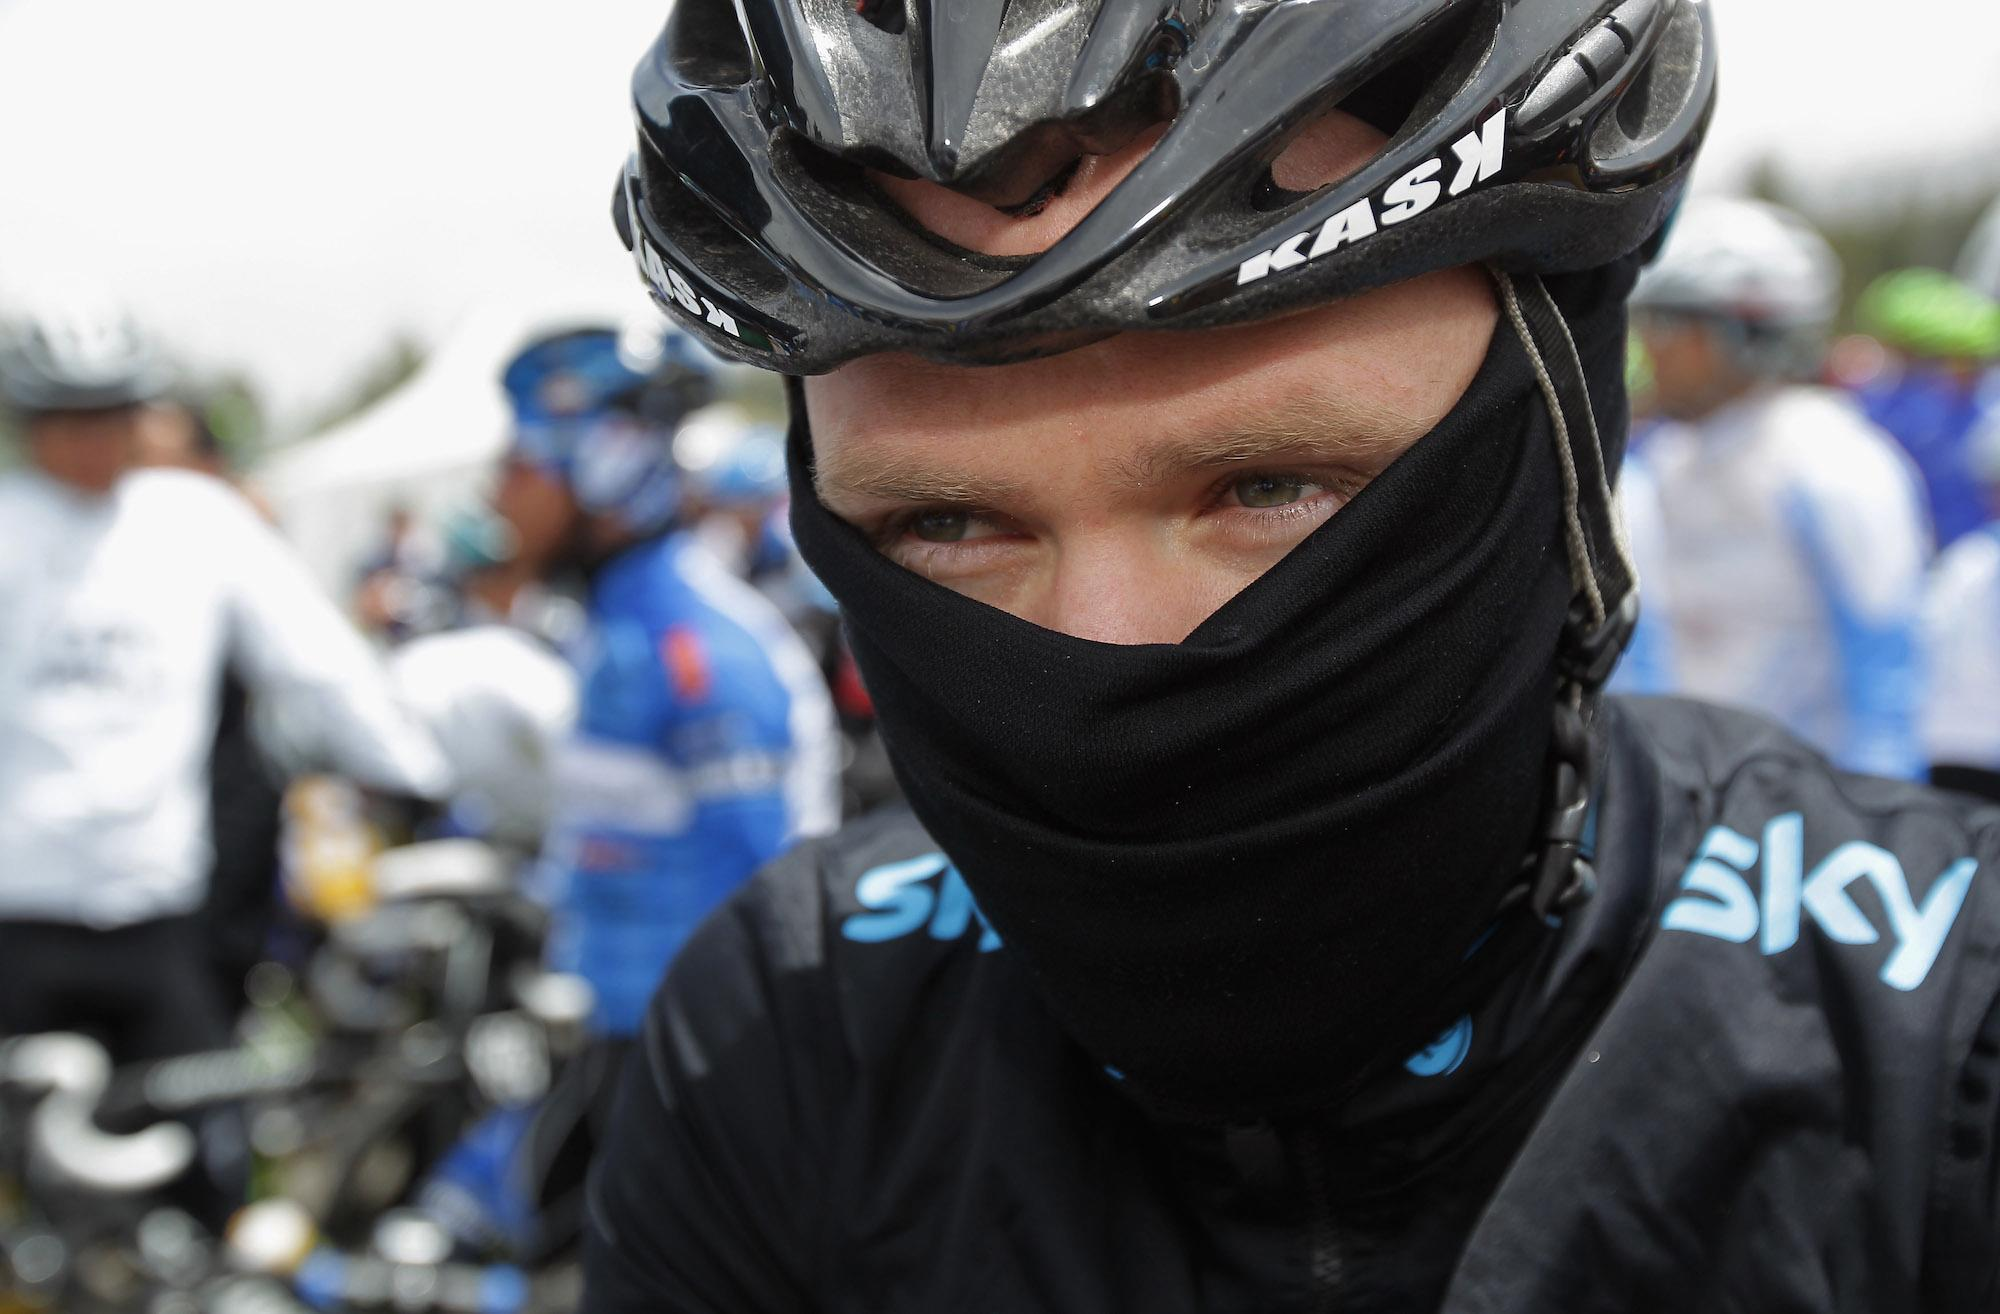 The smartest career move that Tour de France winner Chris Froome ever made was posing as someone else